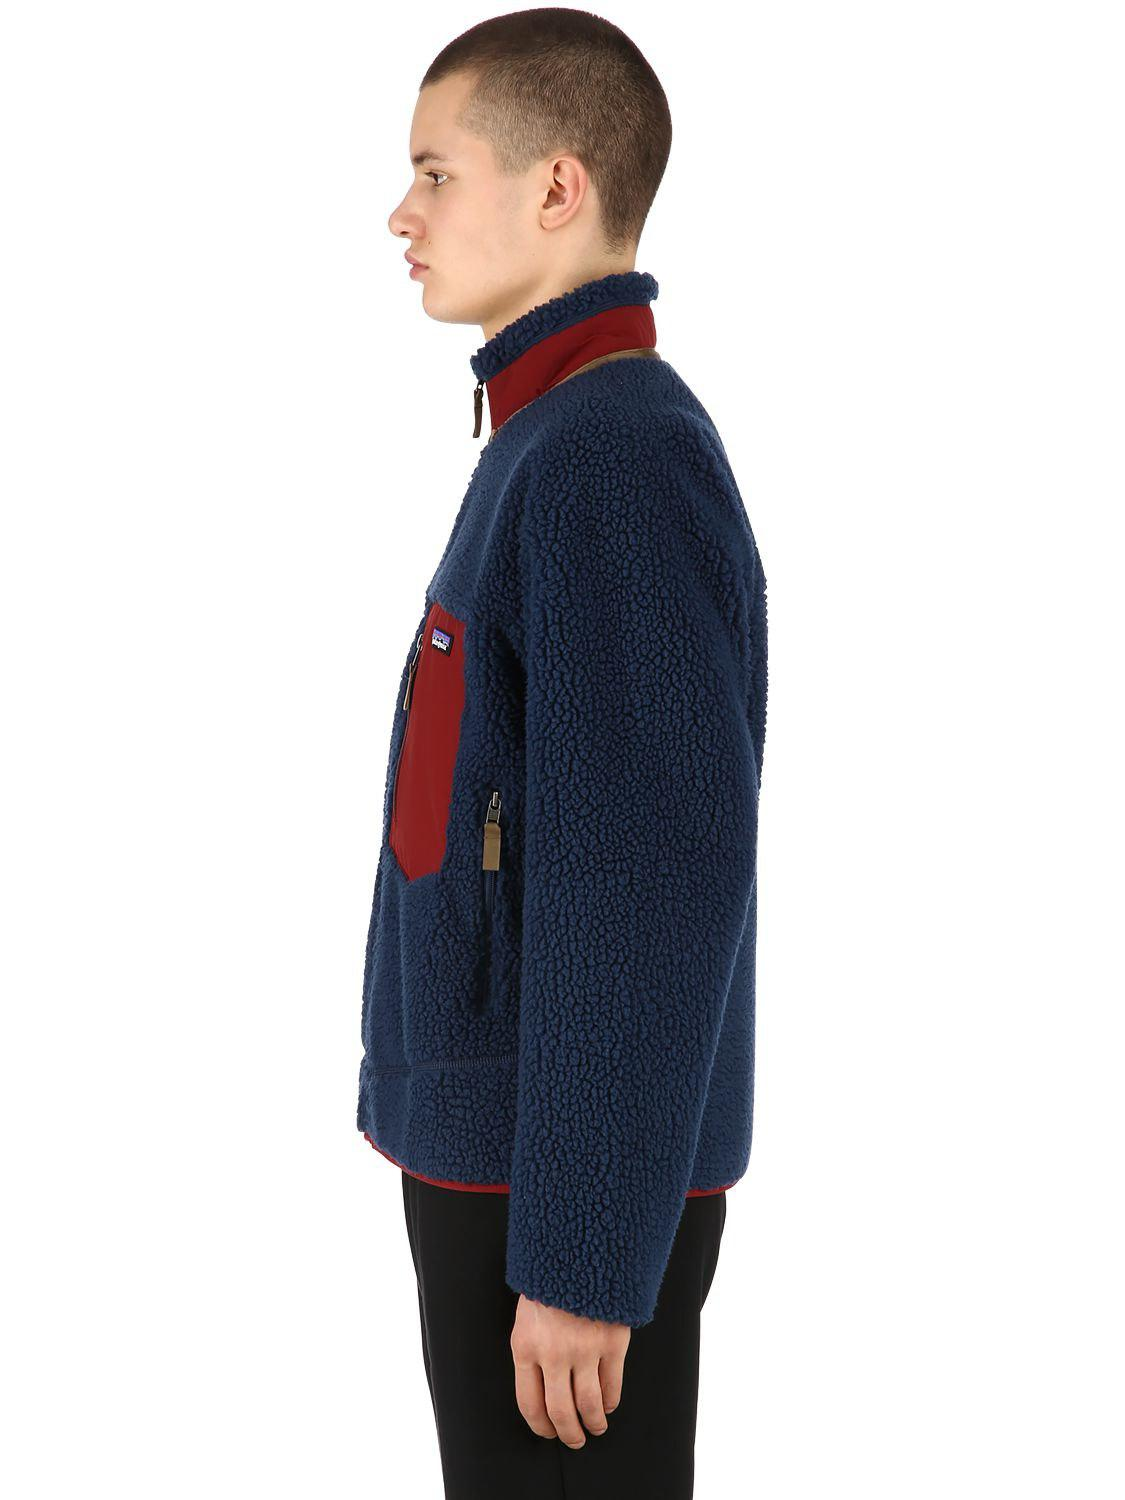 Patagonia Classic Retro-x Fleece Jacket in Navy (Blue) for Men